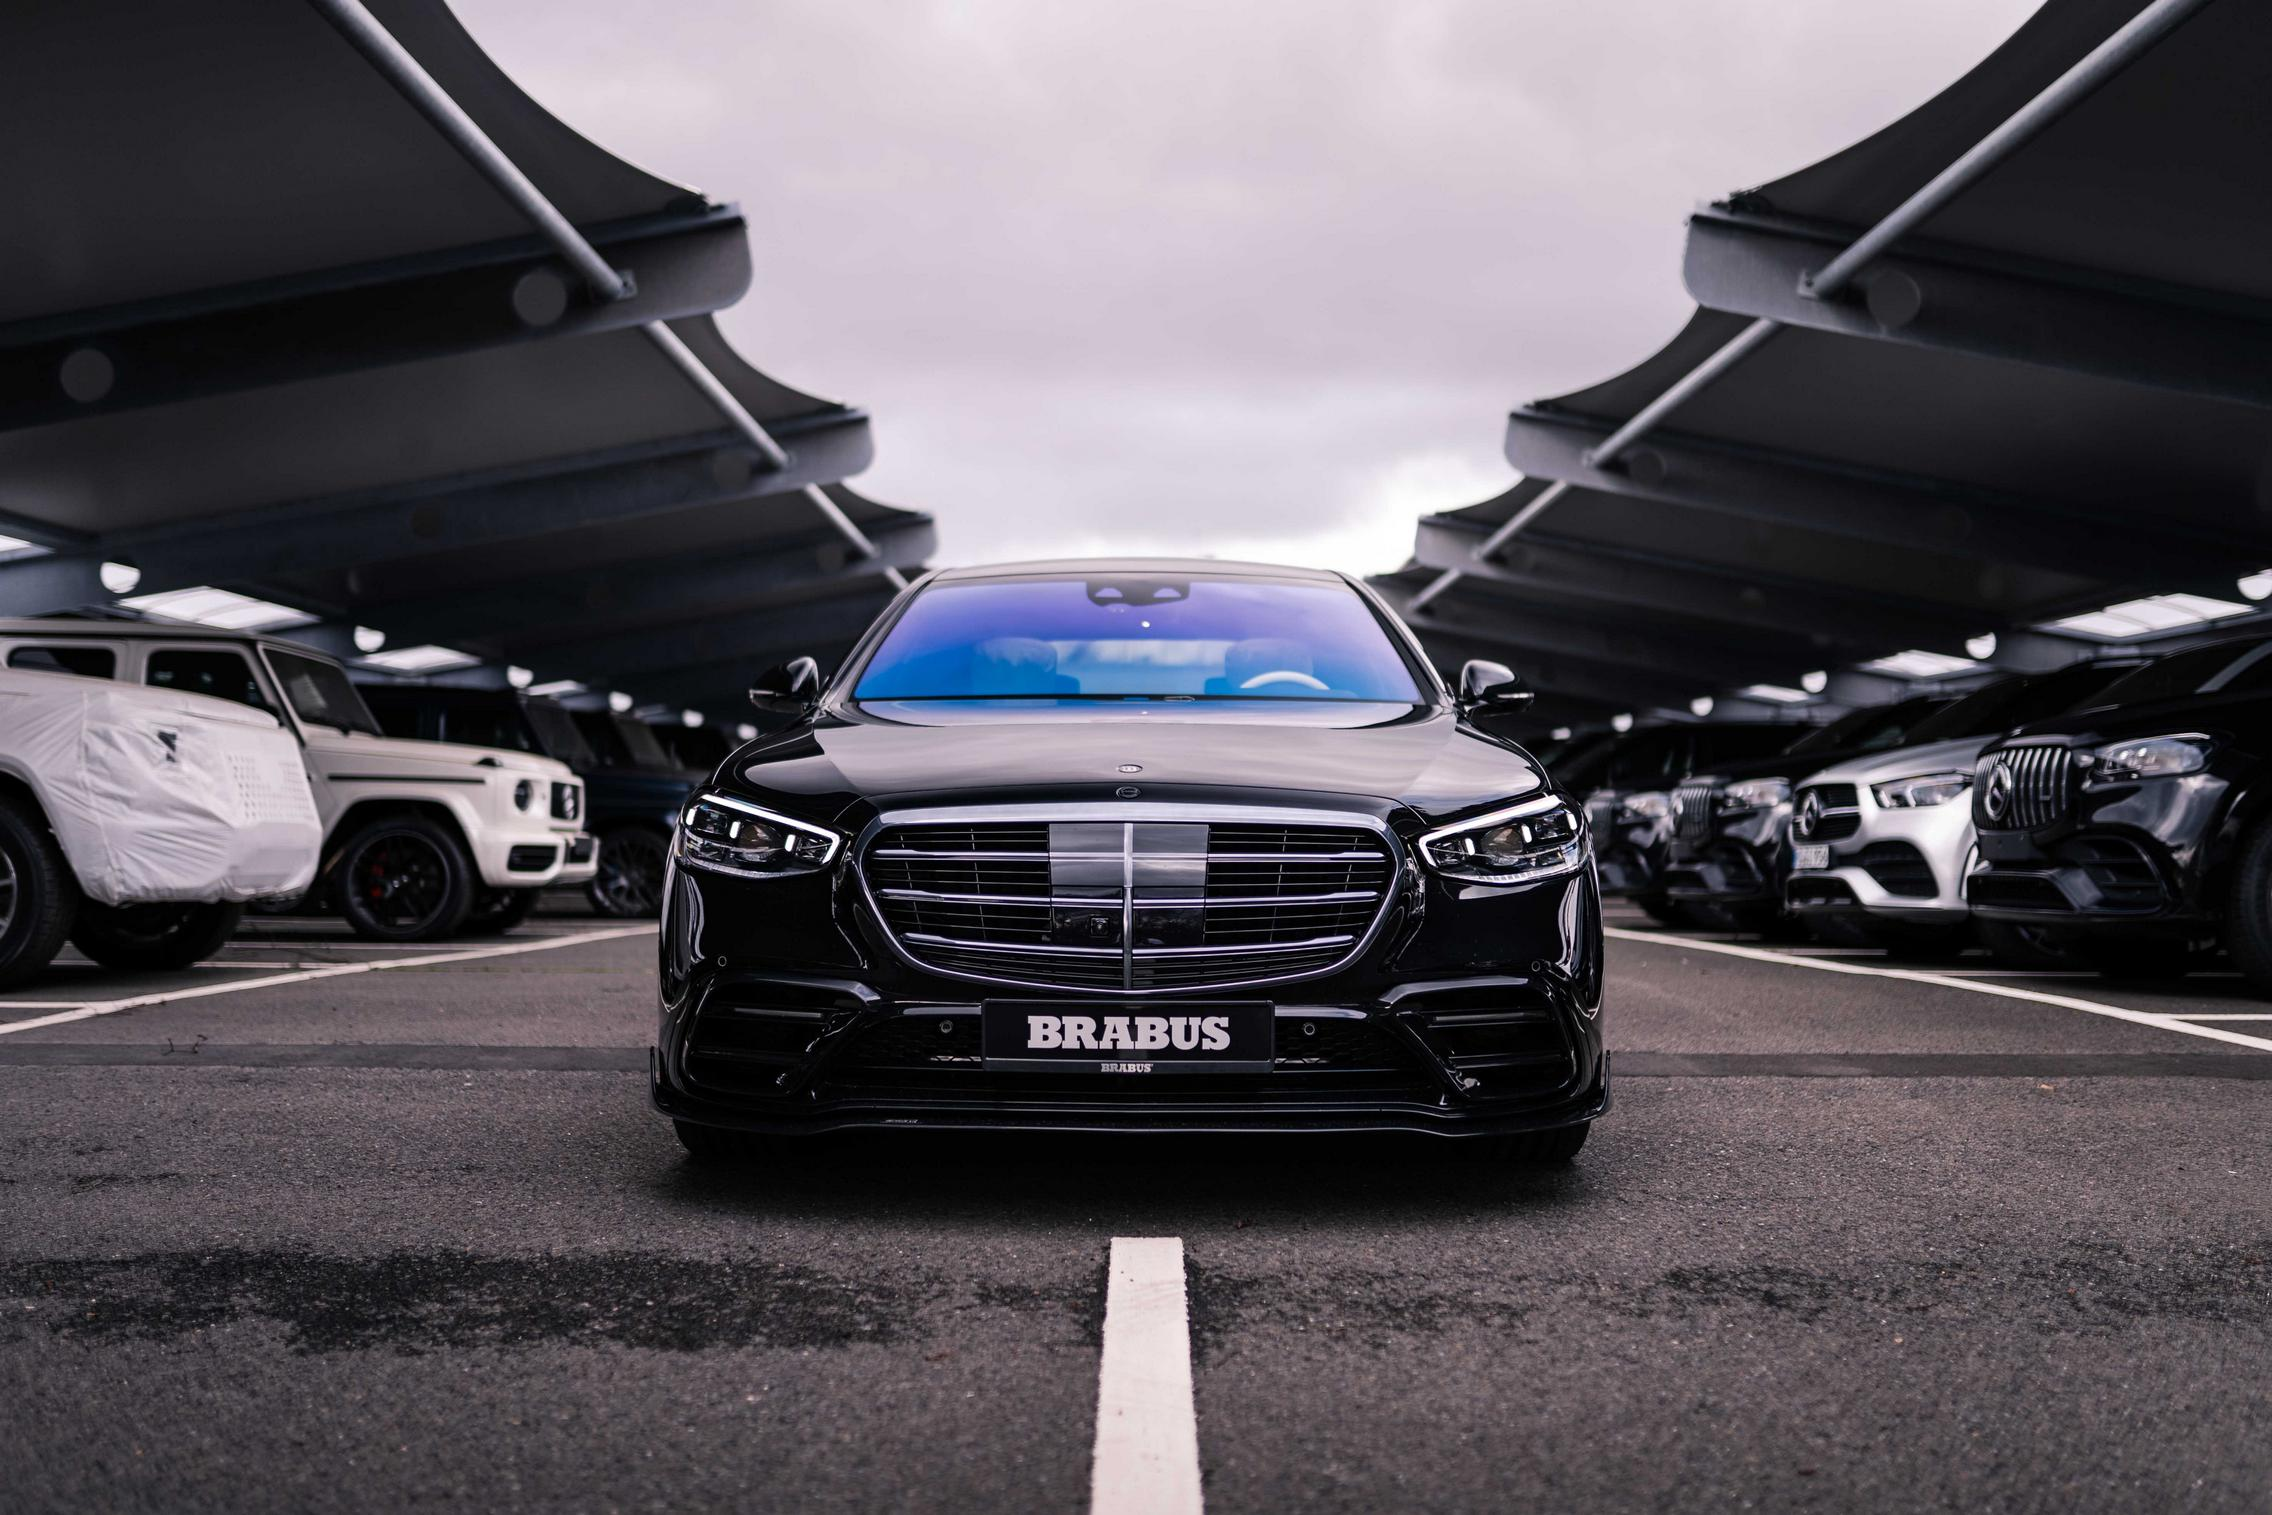 Brabus S-Class front